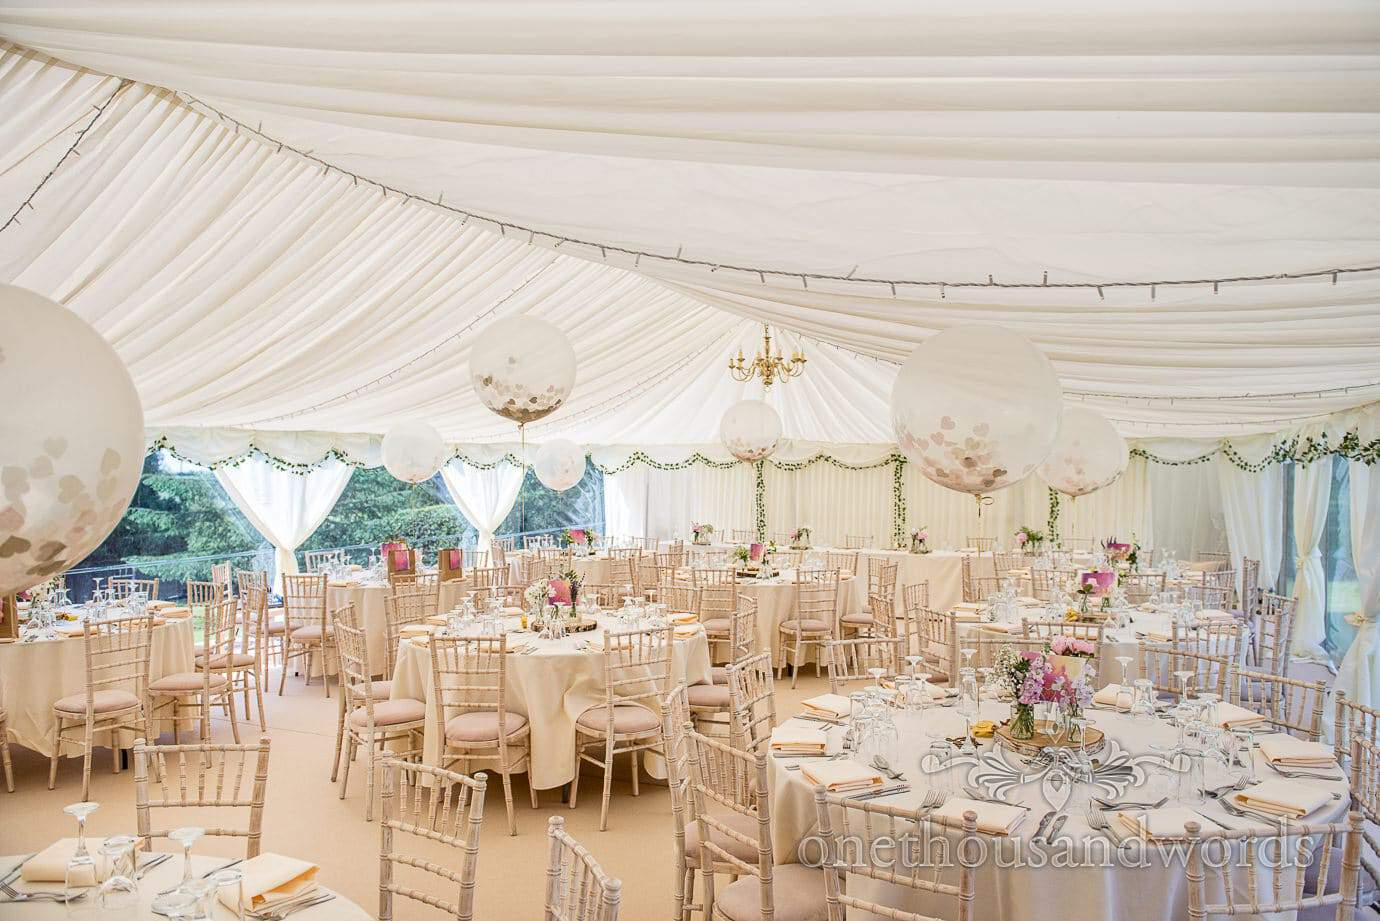 Country Wedding Marquee with pink details, large white balloons and ivy decorations